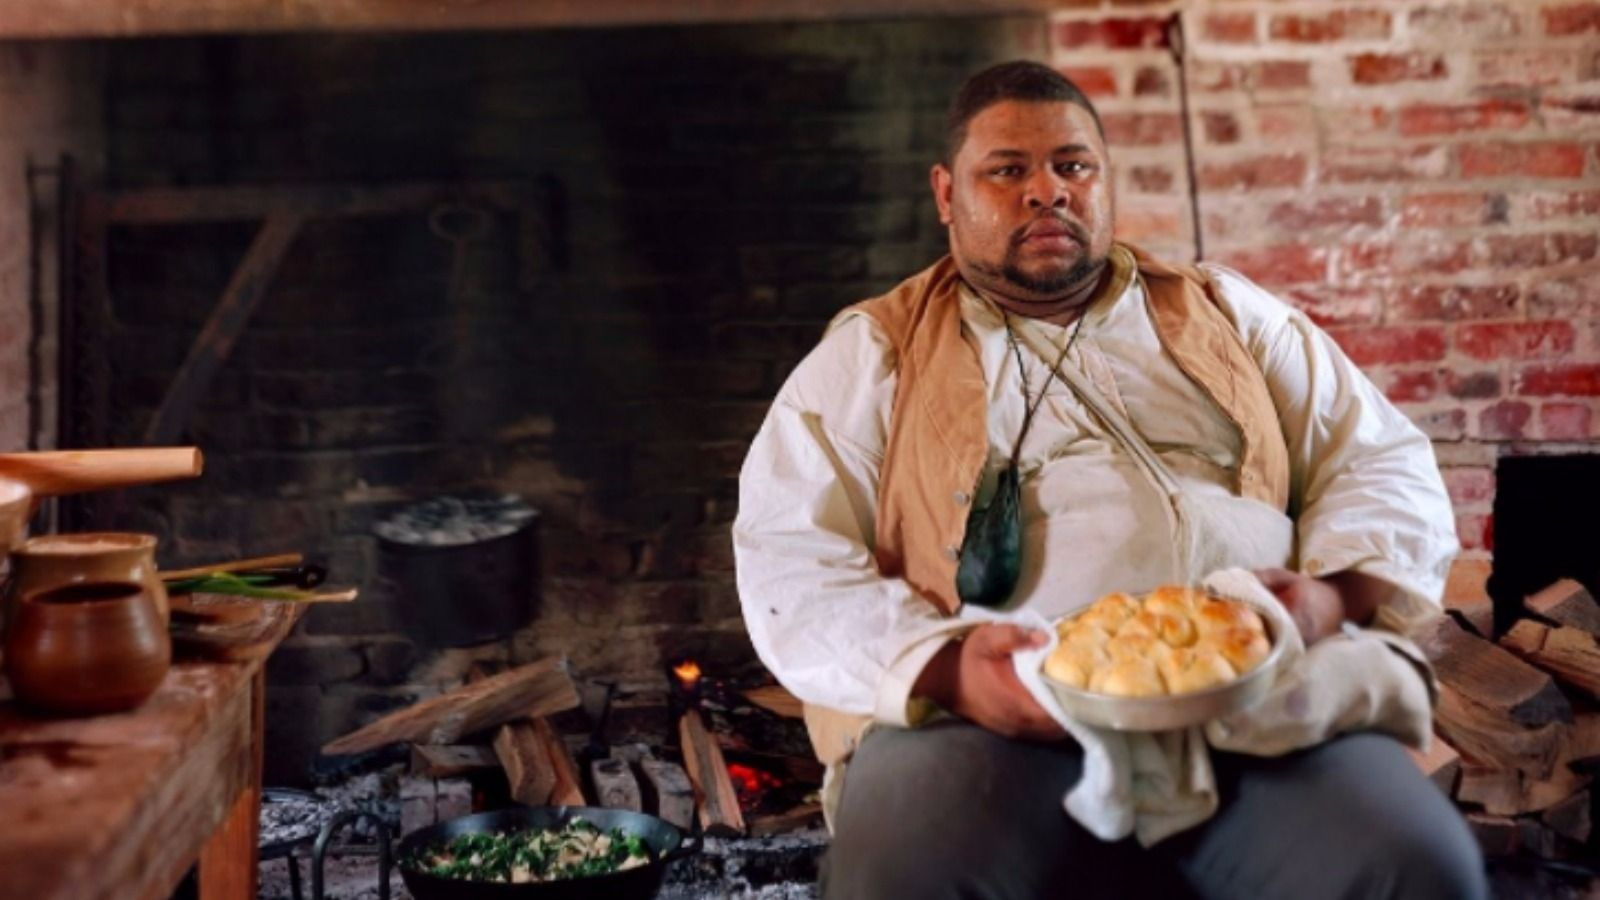 Michael Twitty in the kitchen at Monticello, wearing the clothes of the enslaved to remind visitors how enslaved people built a cuisine, a region and a country.